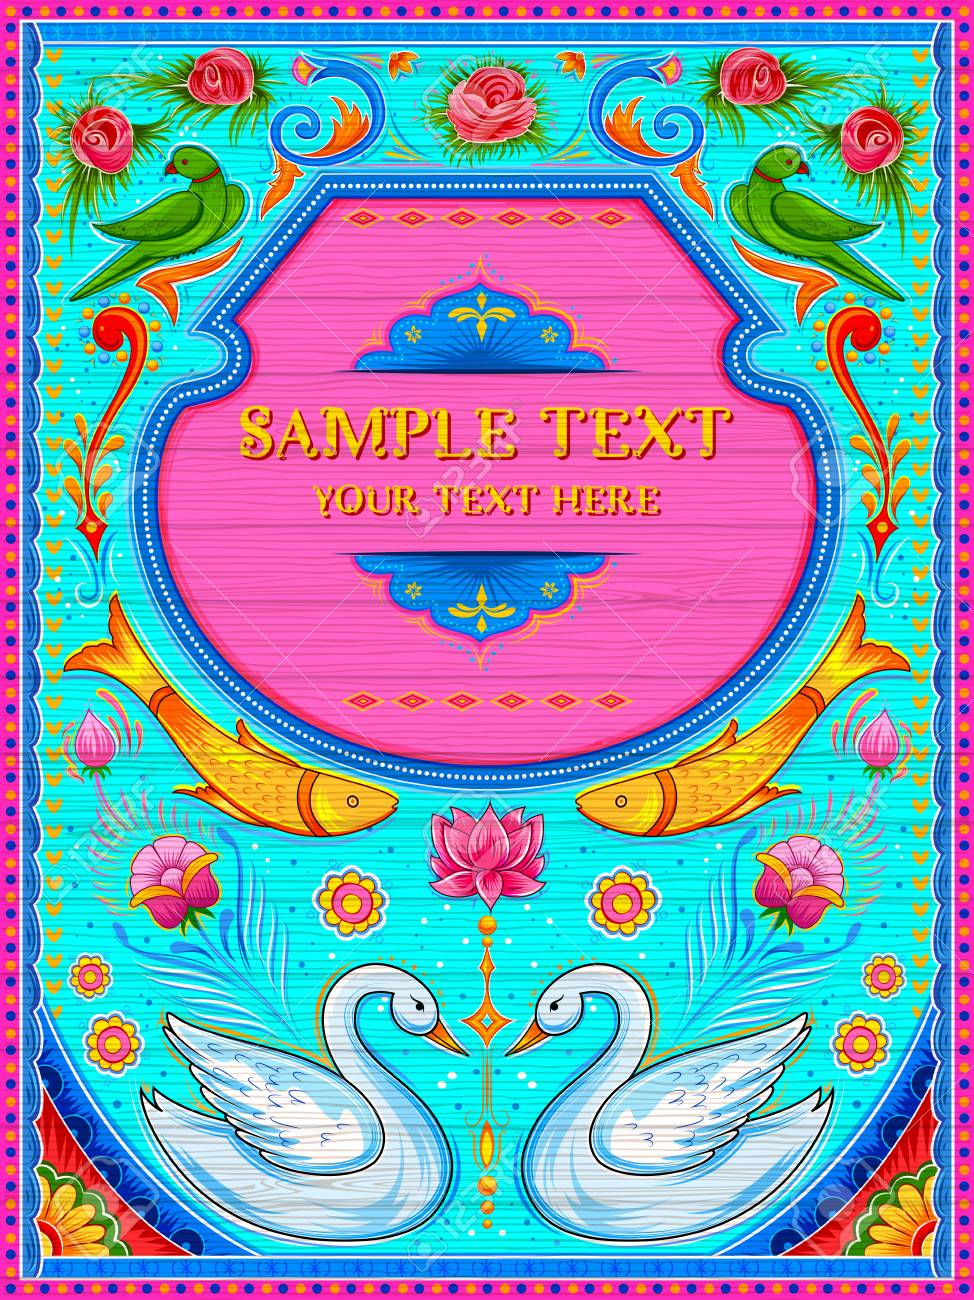 Colorful welcome banner in truck art kitsch style of India - 89983452